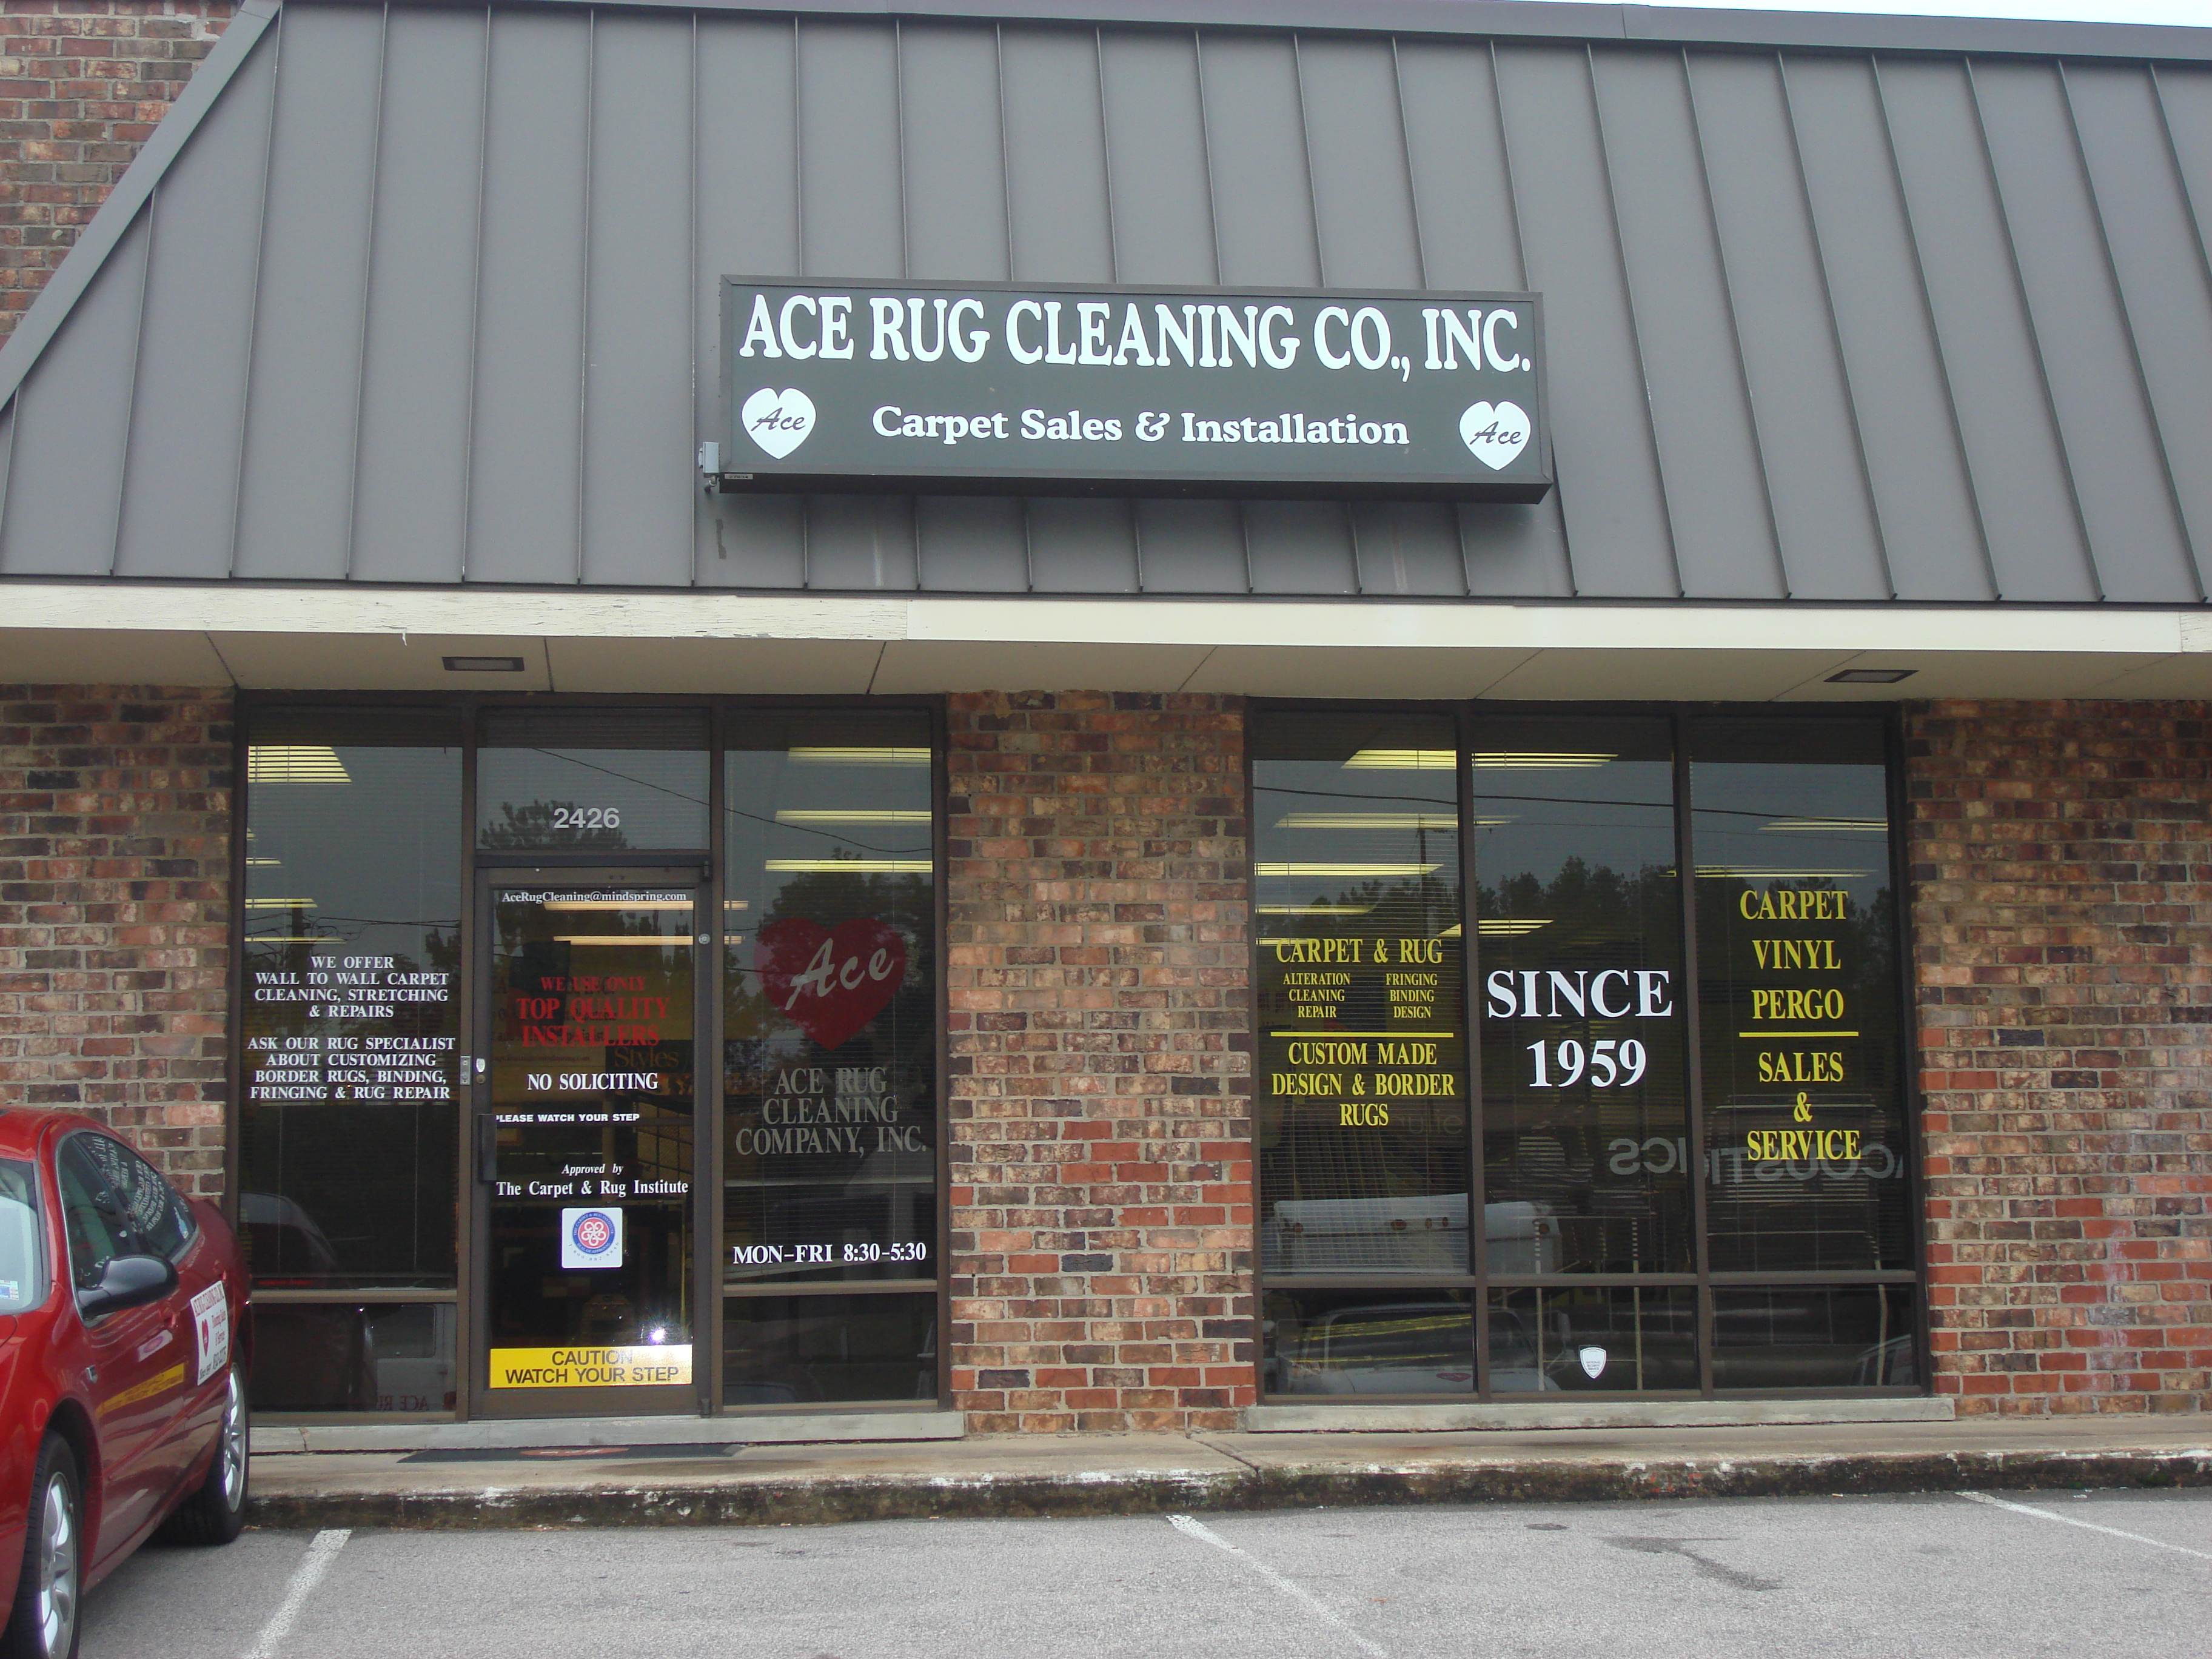 Ace Rug Cleaning Company Inc Raleigh, NC 27604 - YP.com